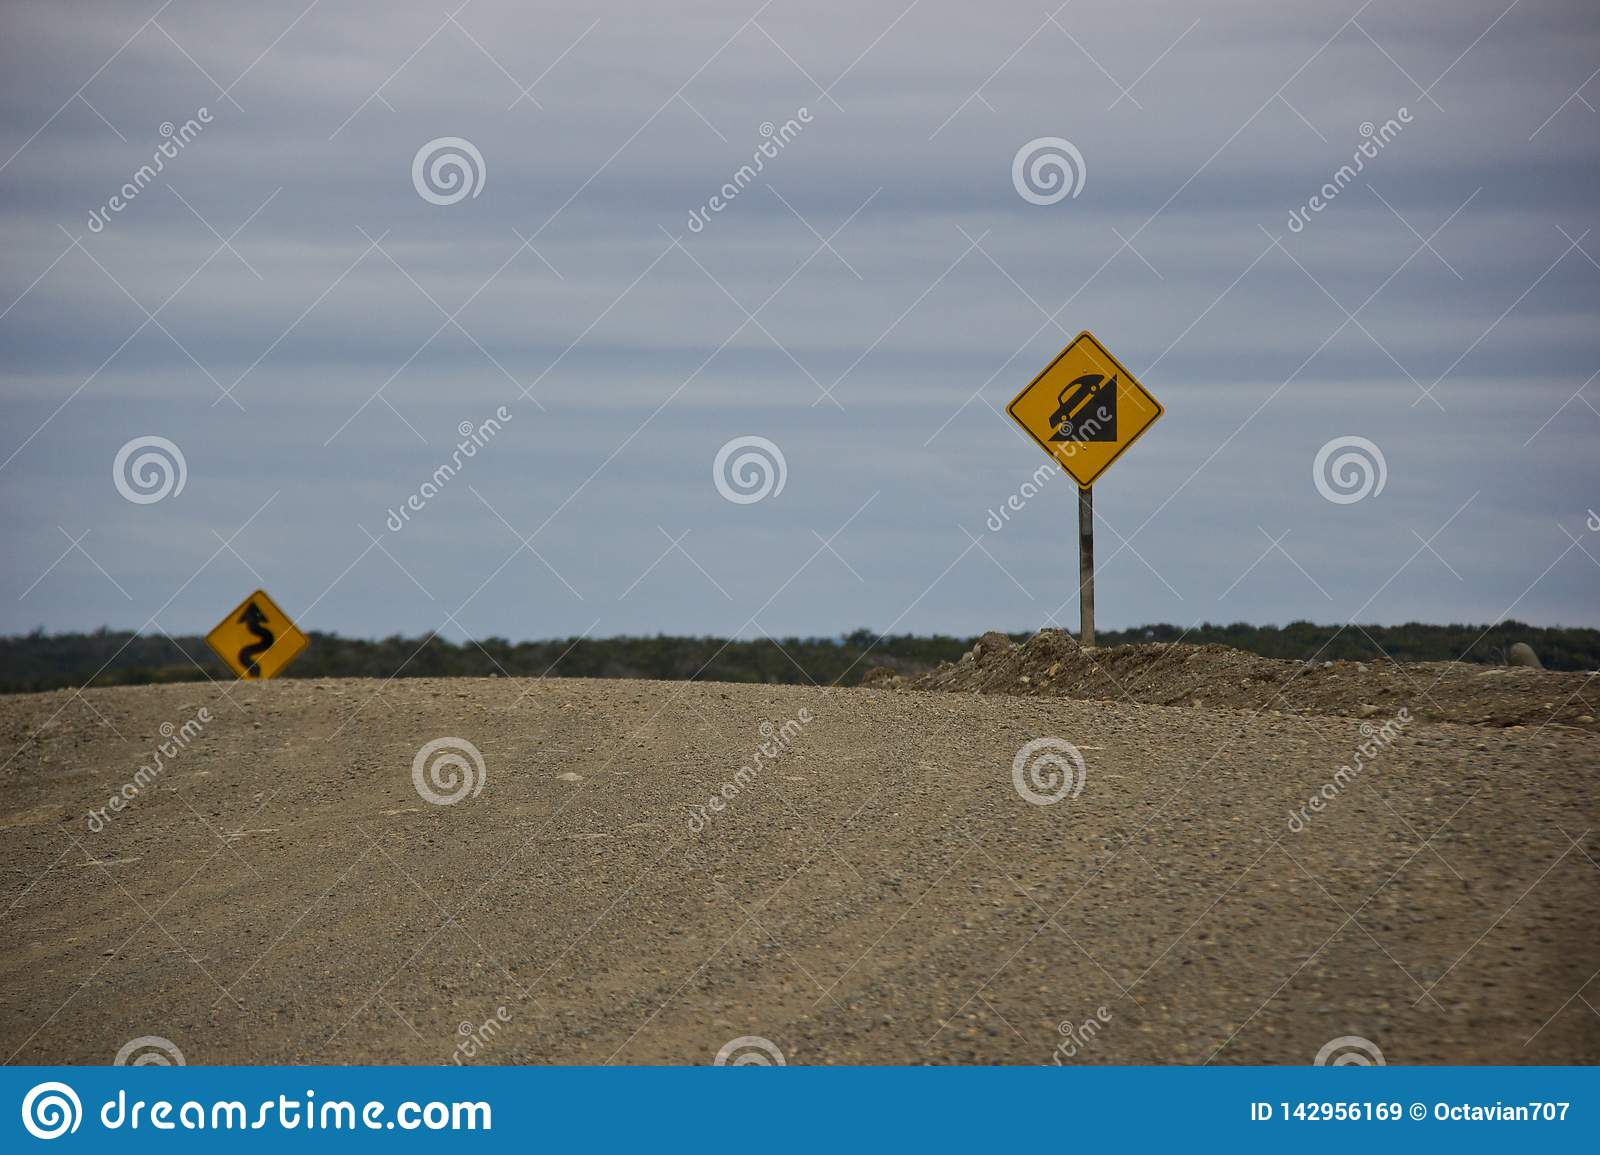 Road signs for dangerous roads in Argentina